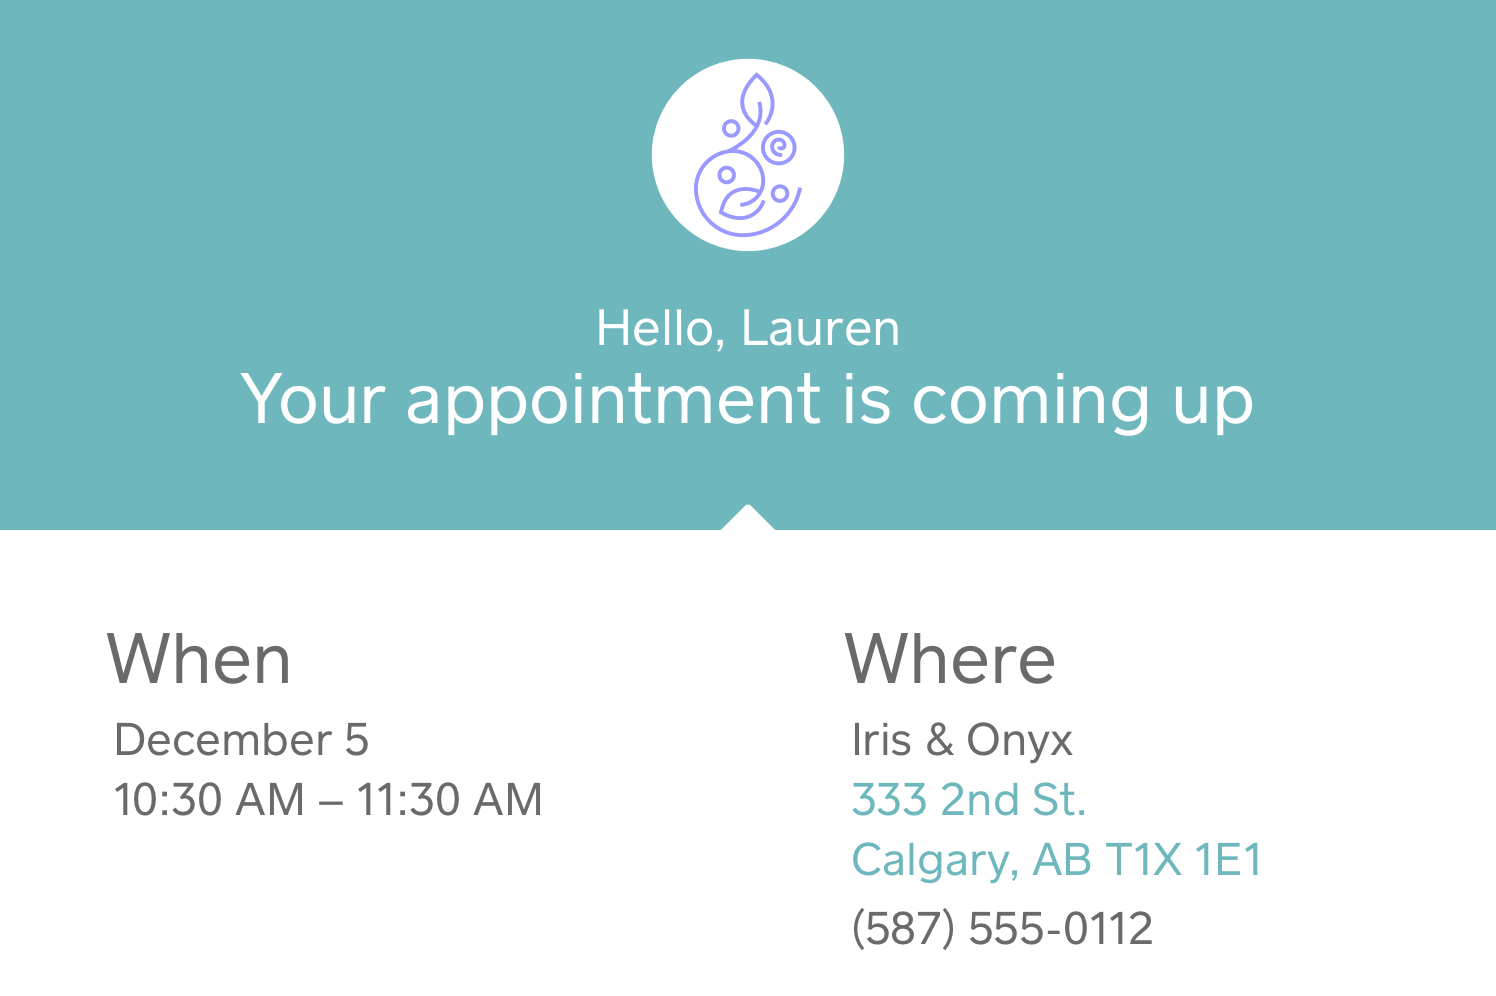 Image of an SMS appointment reminder